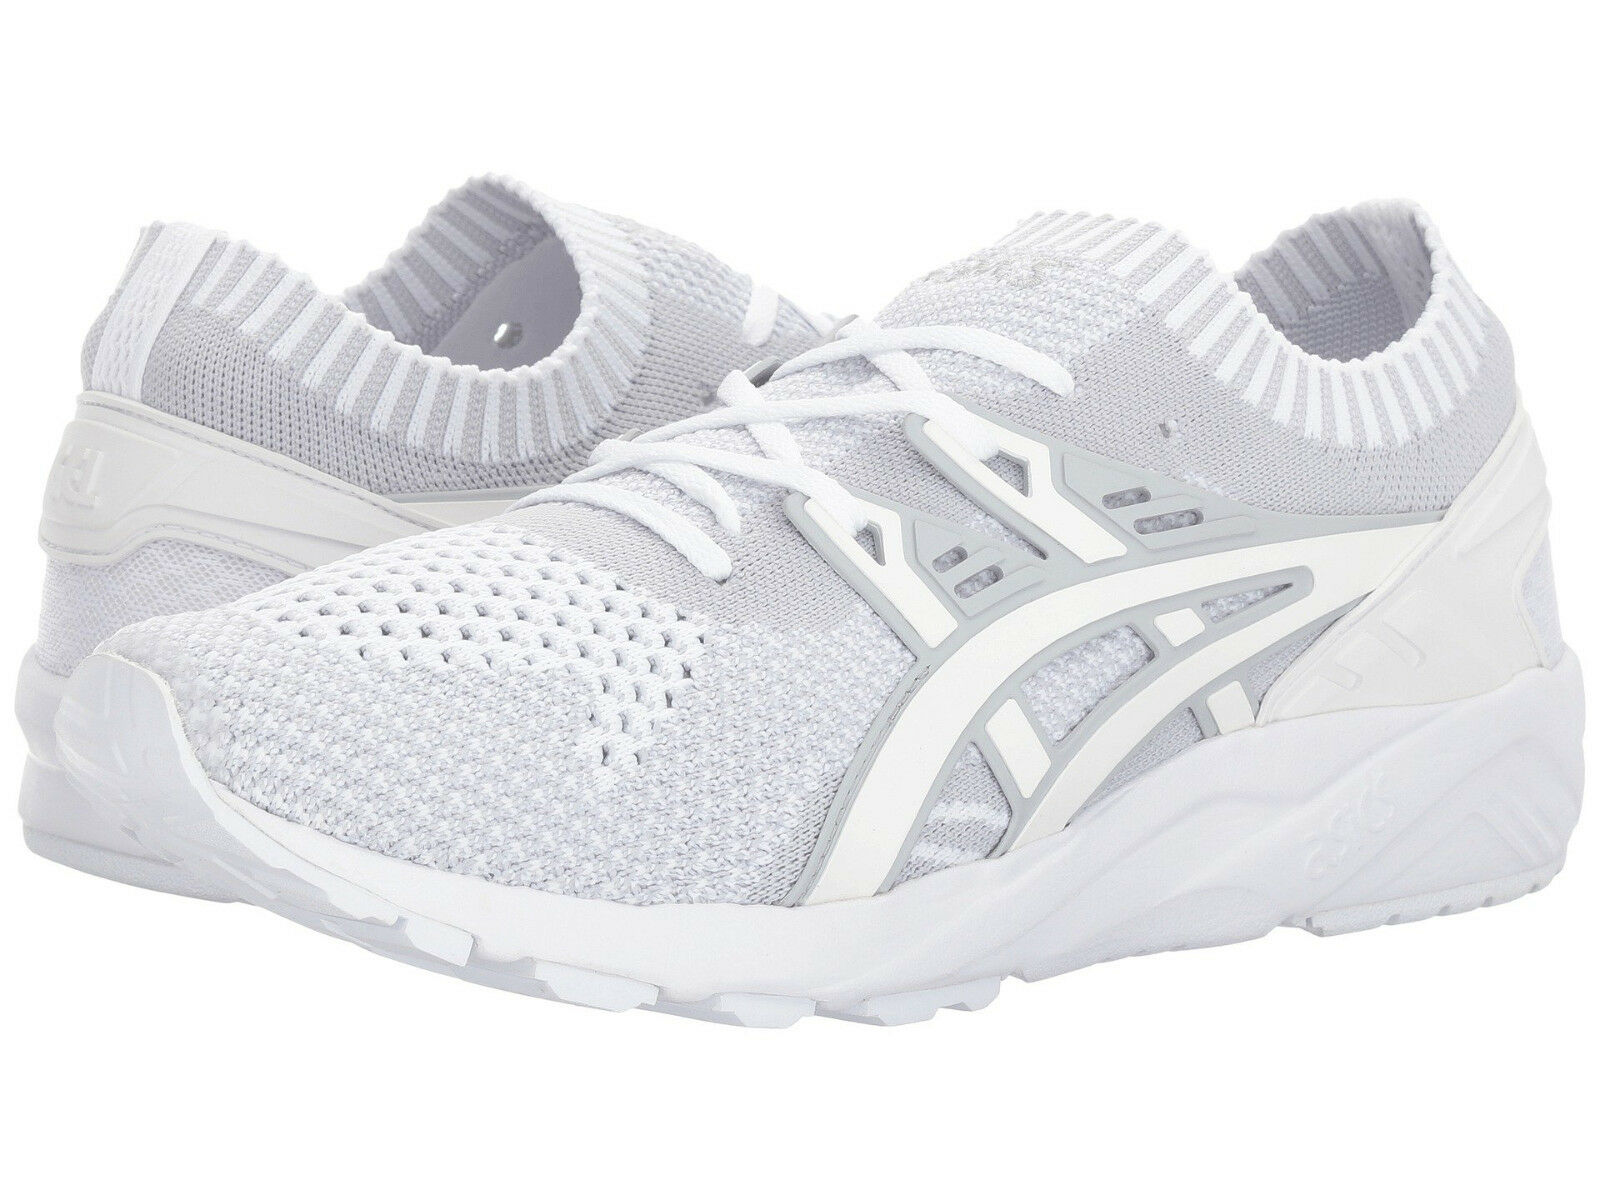 Asics Gel Kayano Trainer Knit Sz US 14 M  Gris  Synthetic Sneakers Homme Chaussures 150